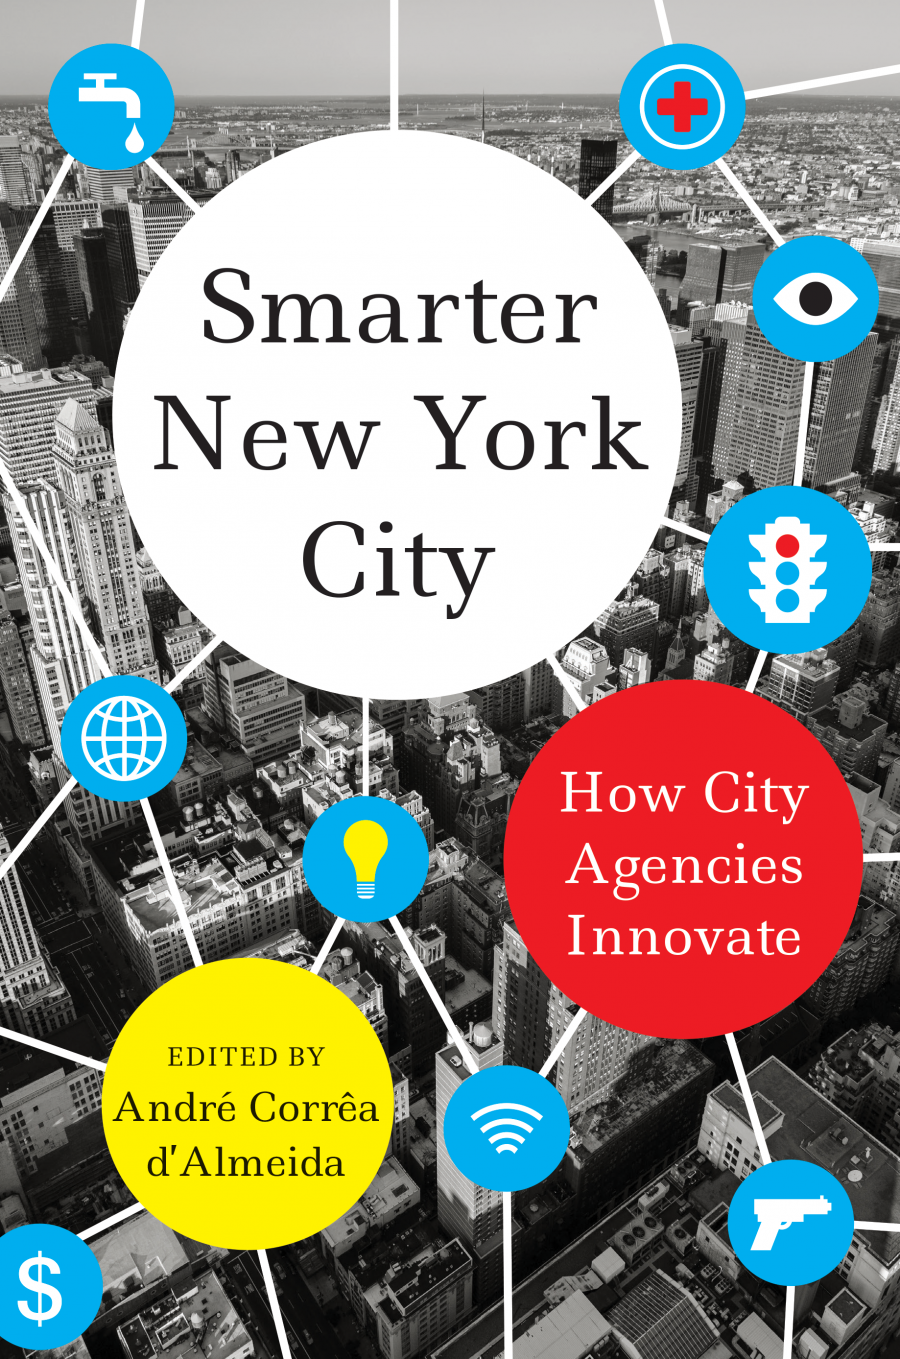 Smarter New York City